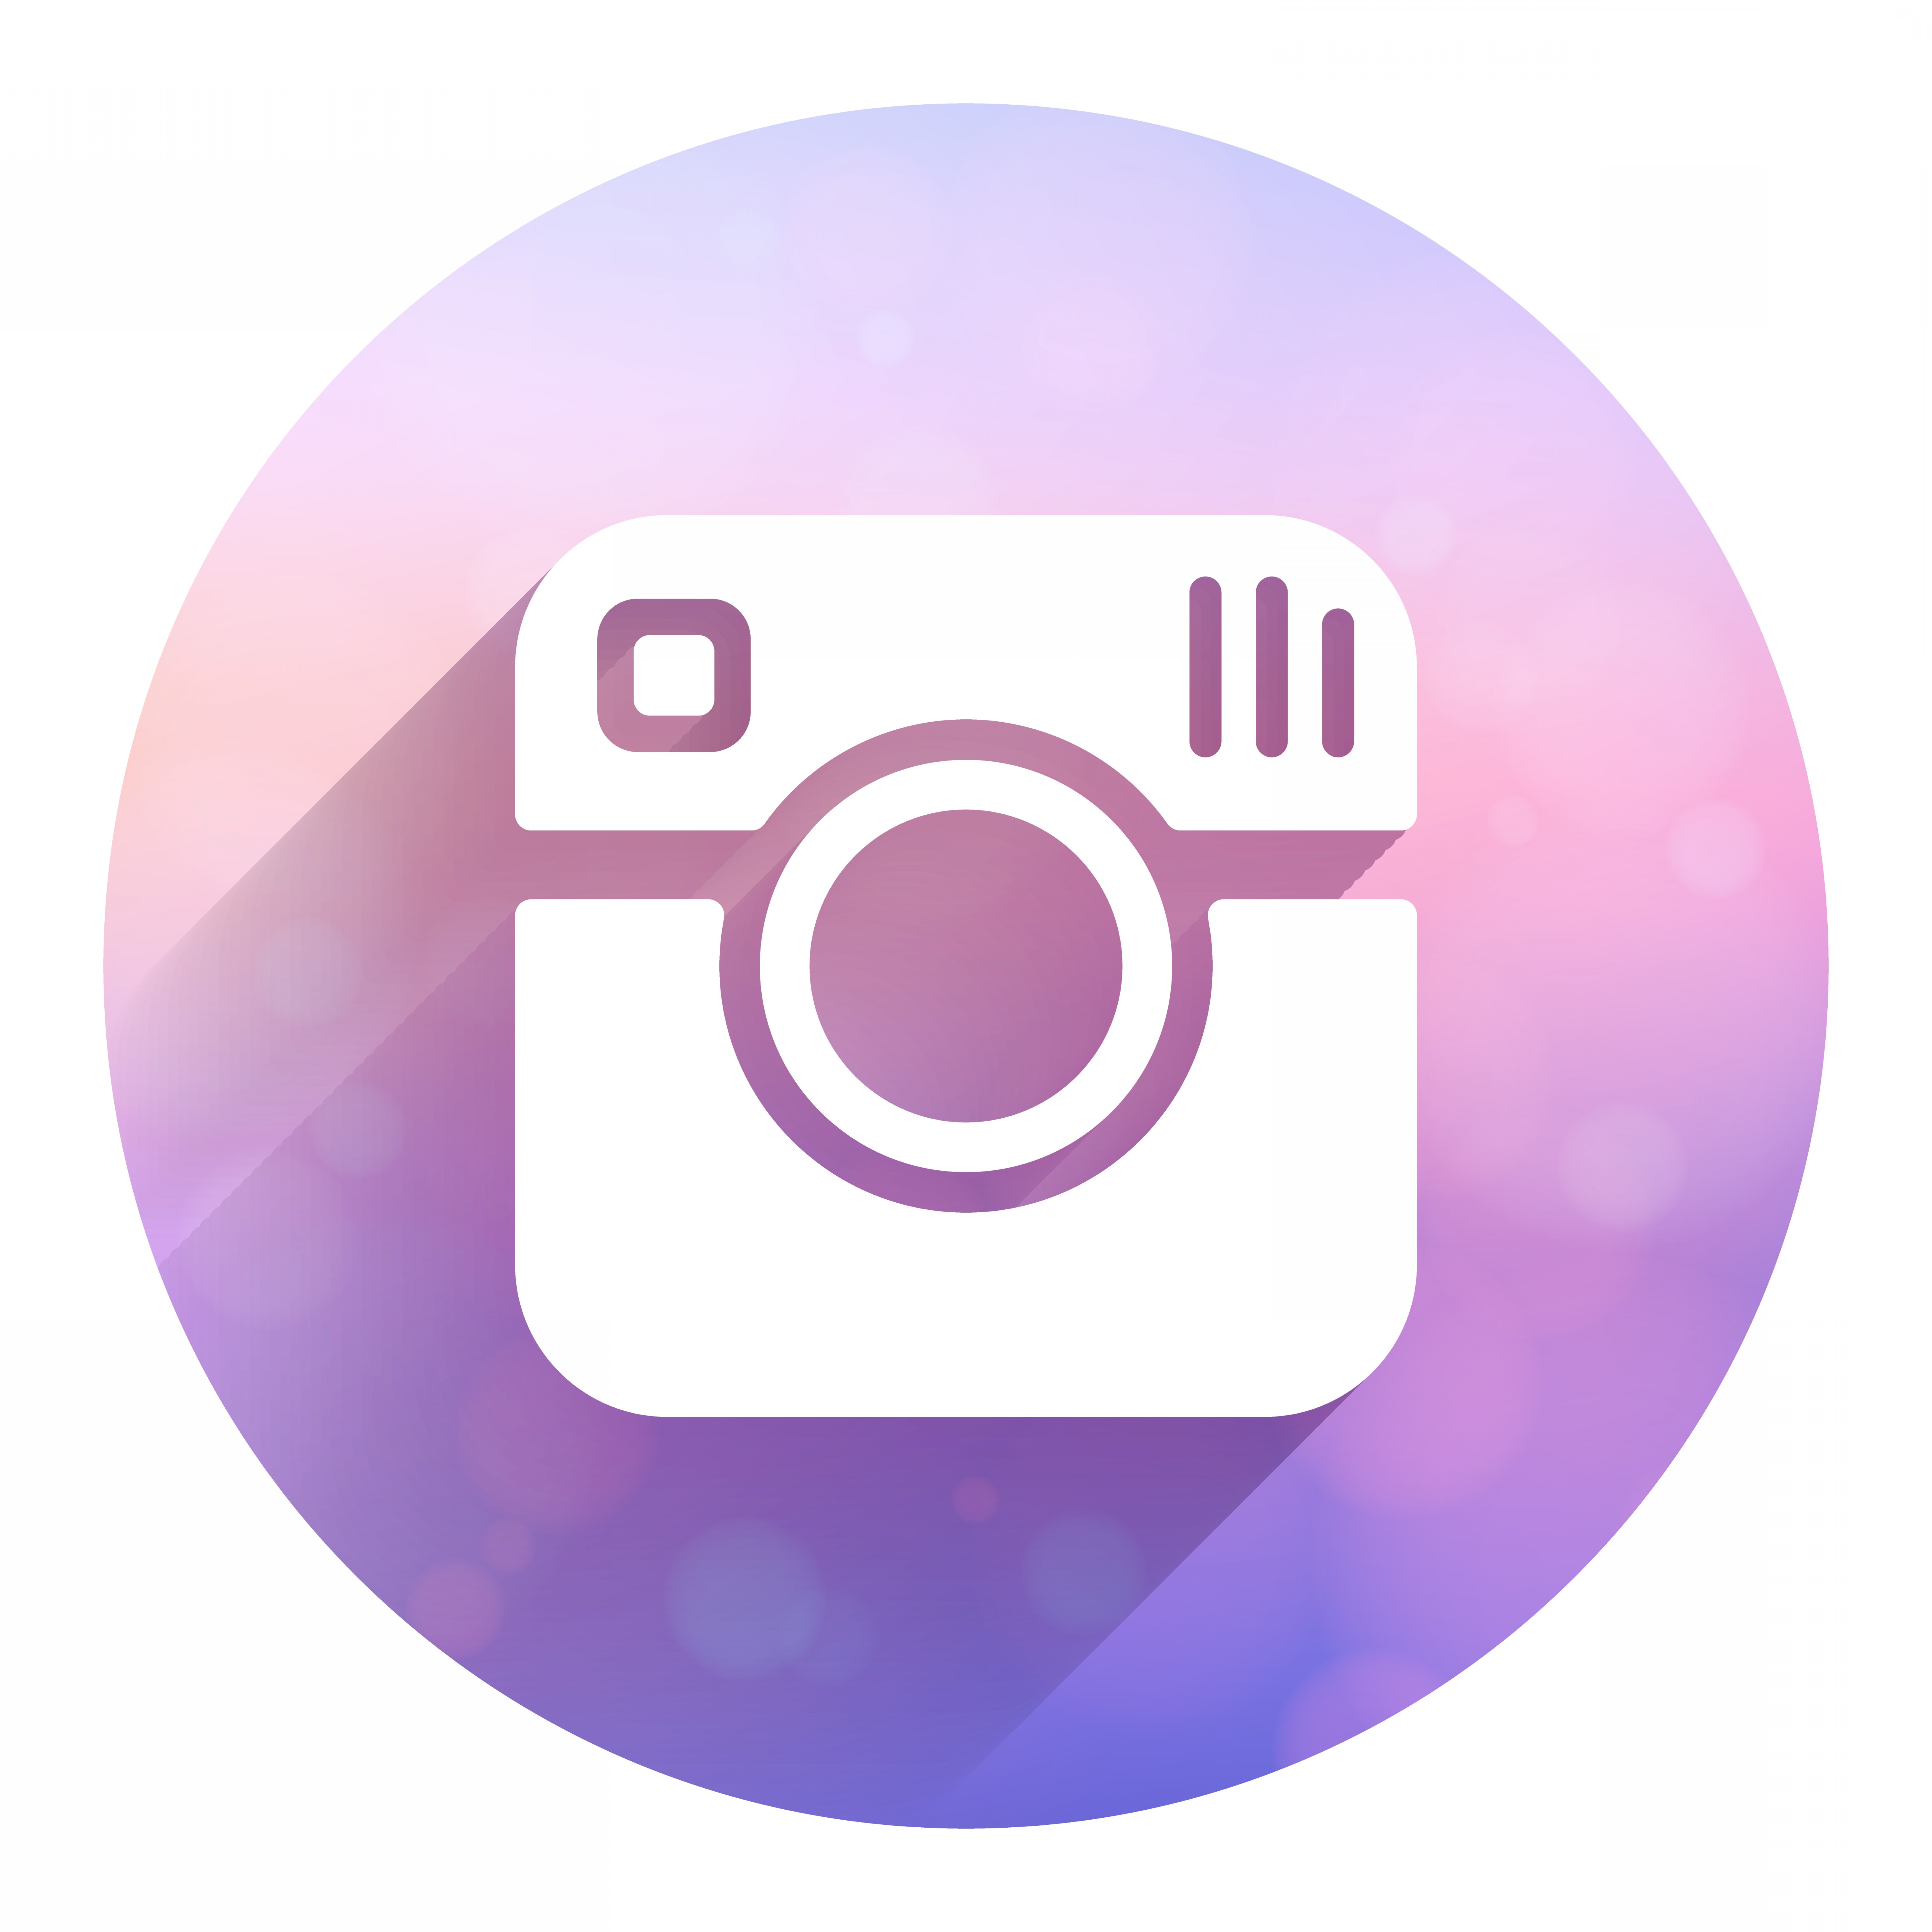 Instagram App Icon Vector: Instagram Marketing Tips To Make People Love Your Brand